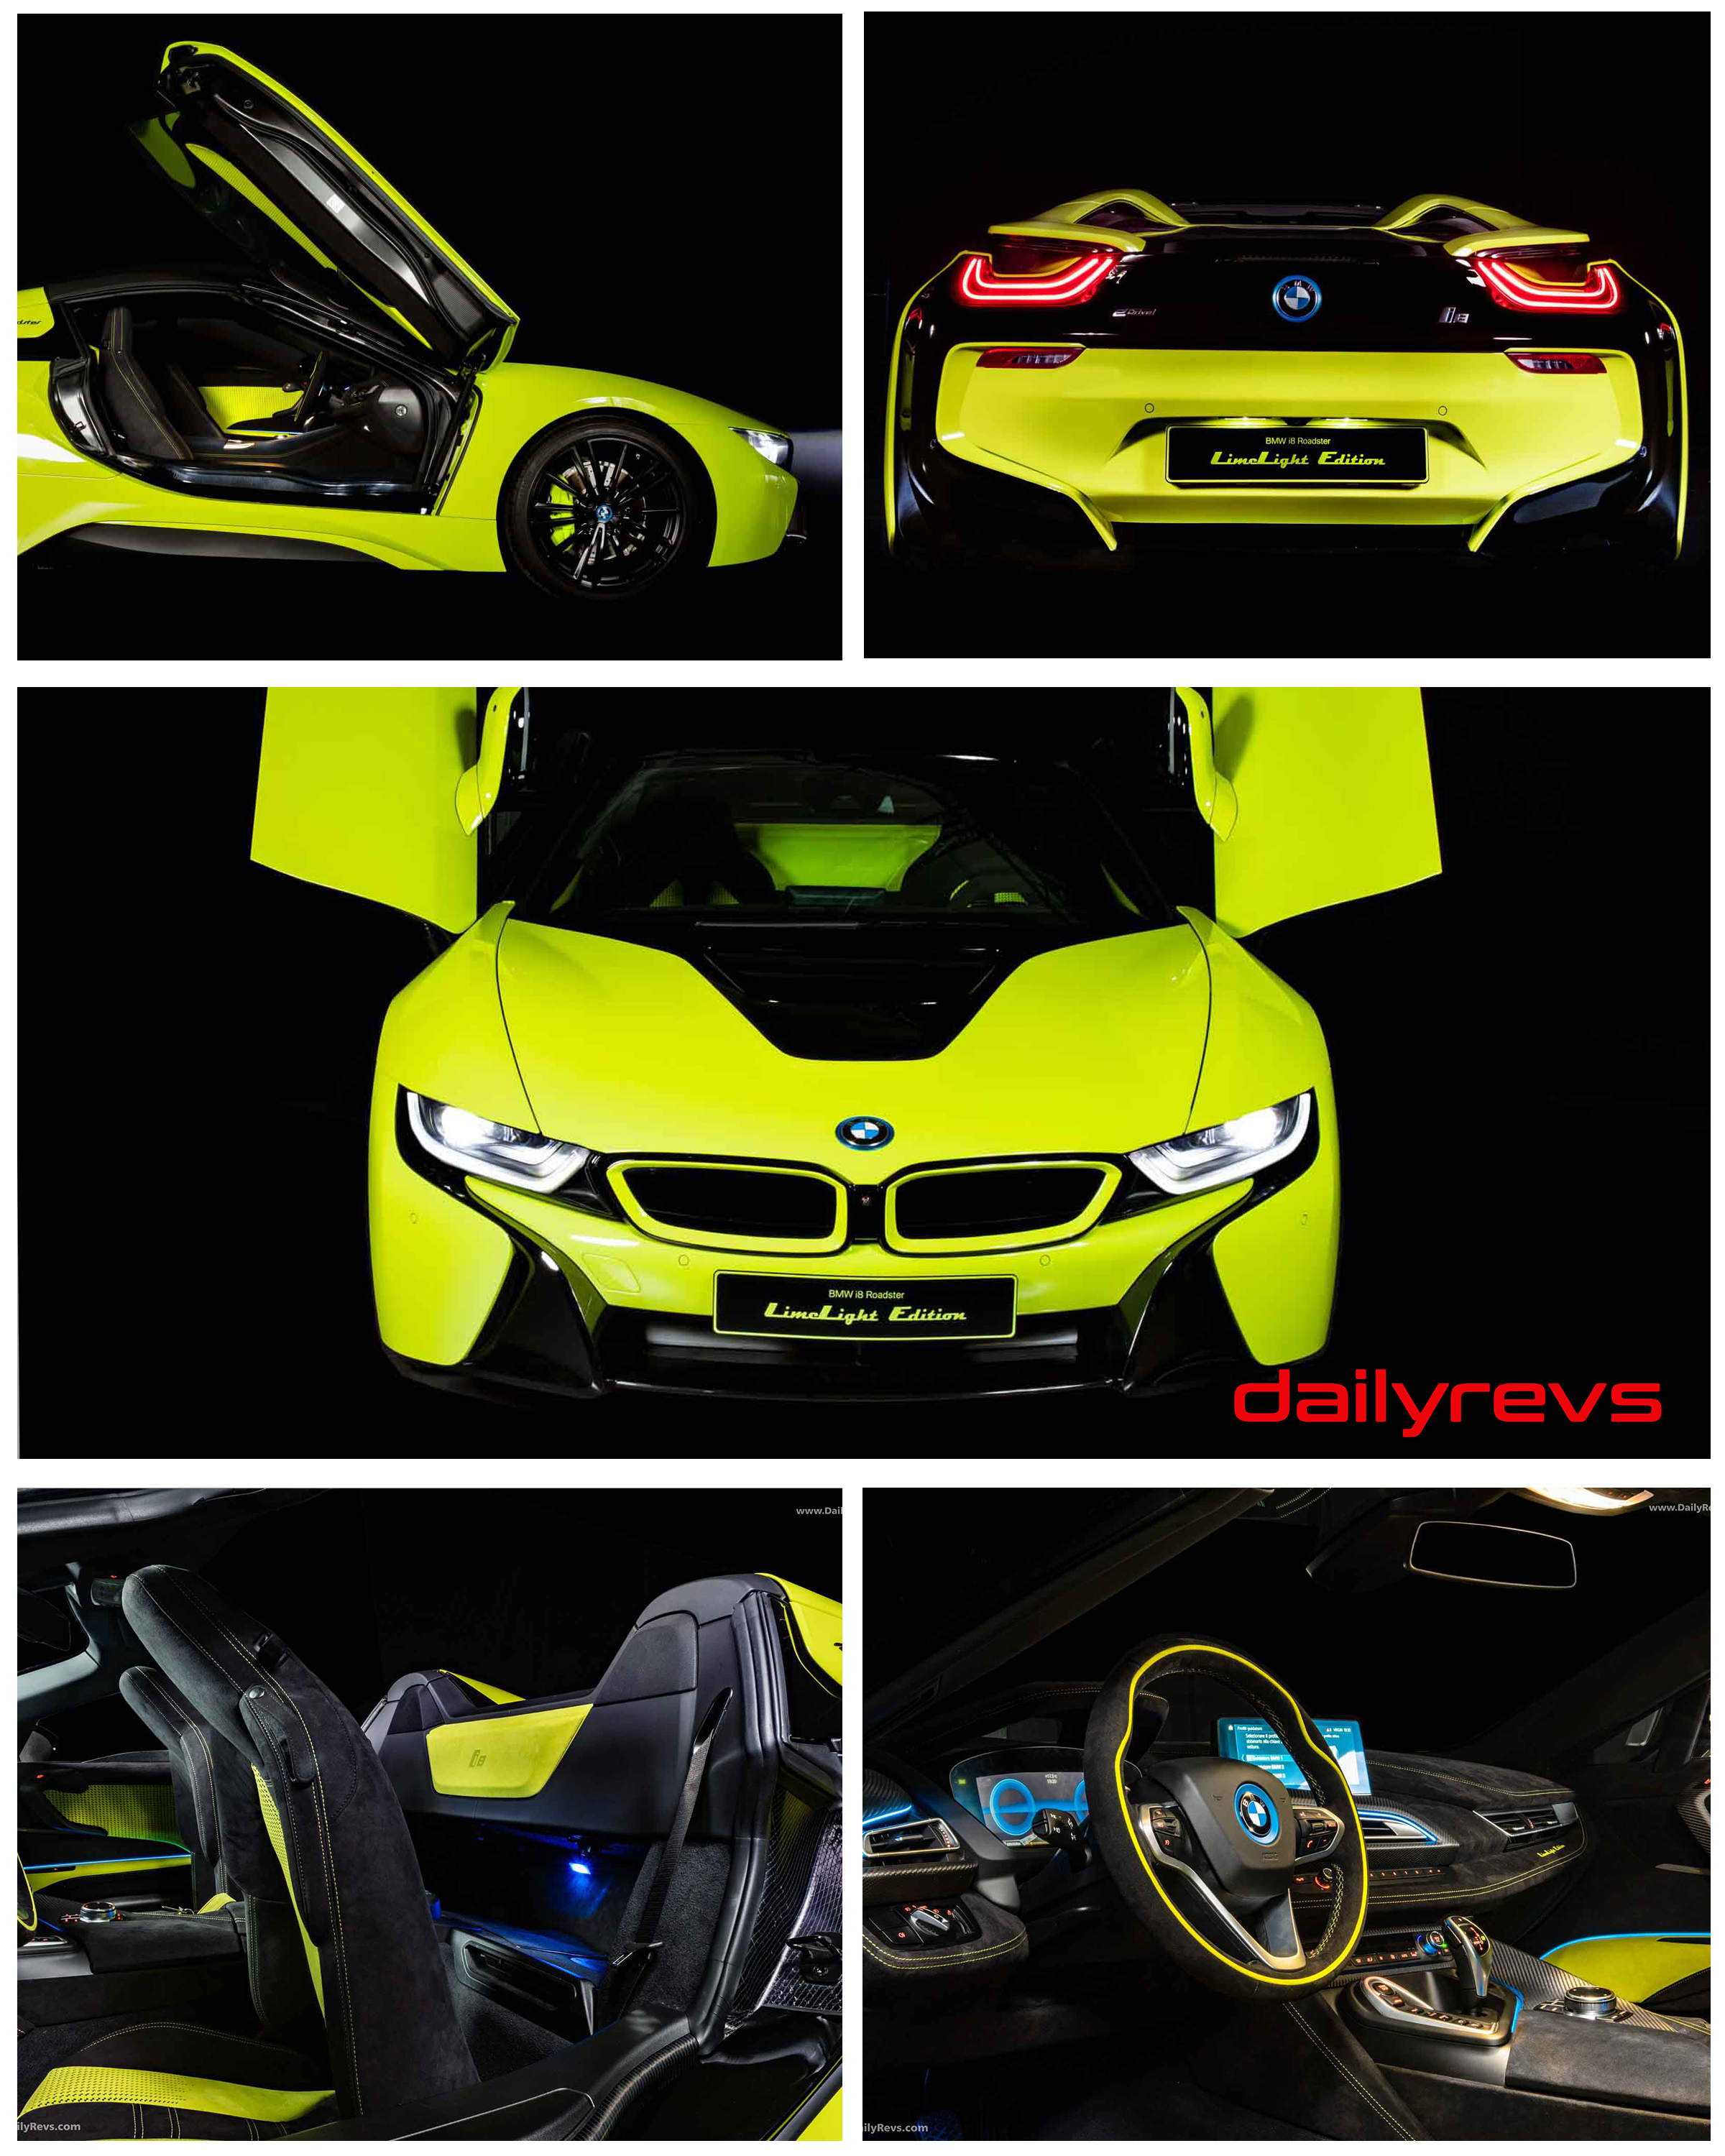 2020 Bmw I8 Roadster Limelight Edition Hd Pictures Videos Specs Information Dailyrevs